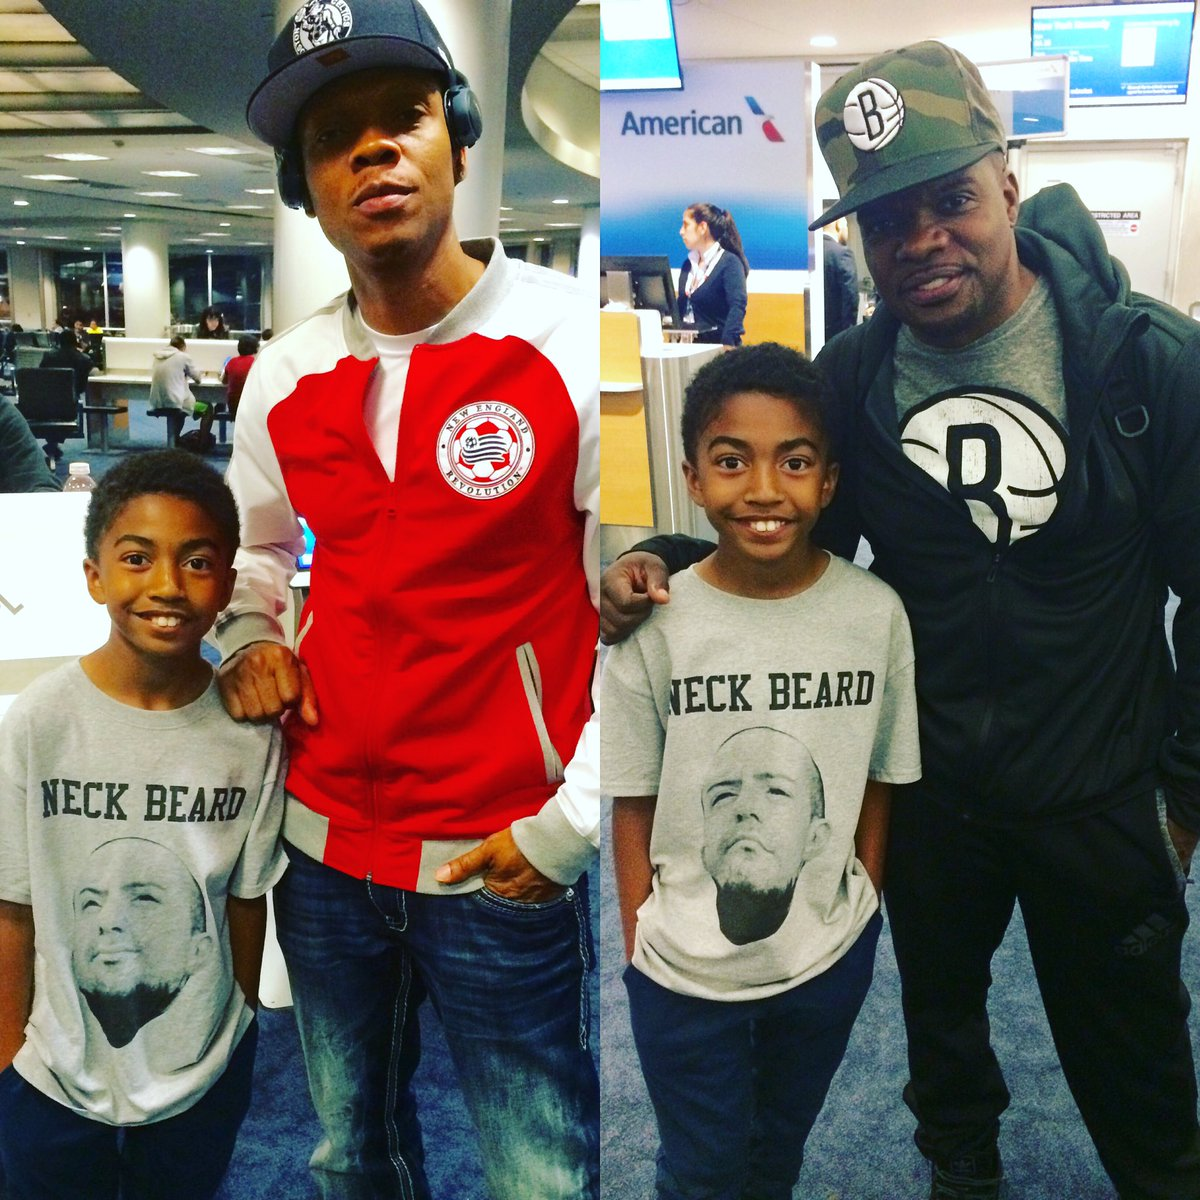 miles brown on twitter i auditioned to be mrrickybell from new edition good luck with the